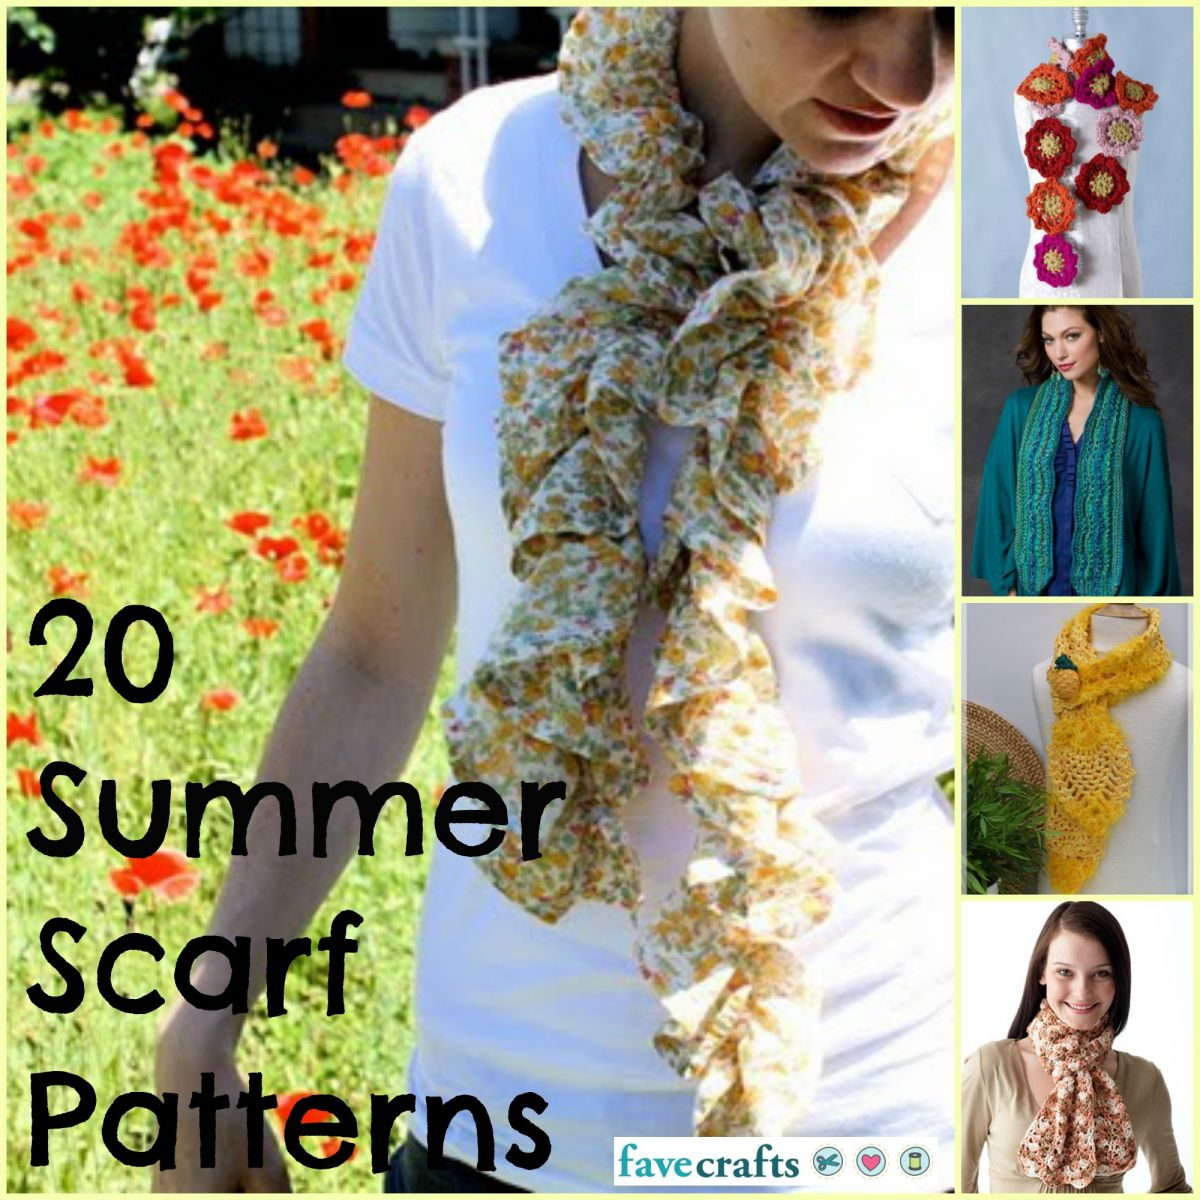 Summer Scarf Patterns